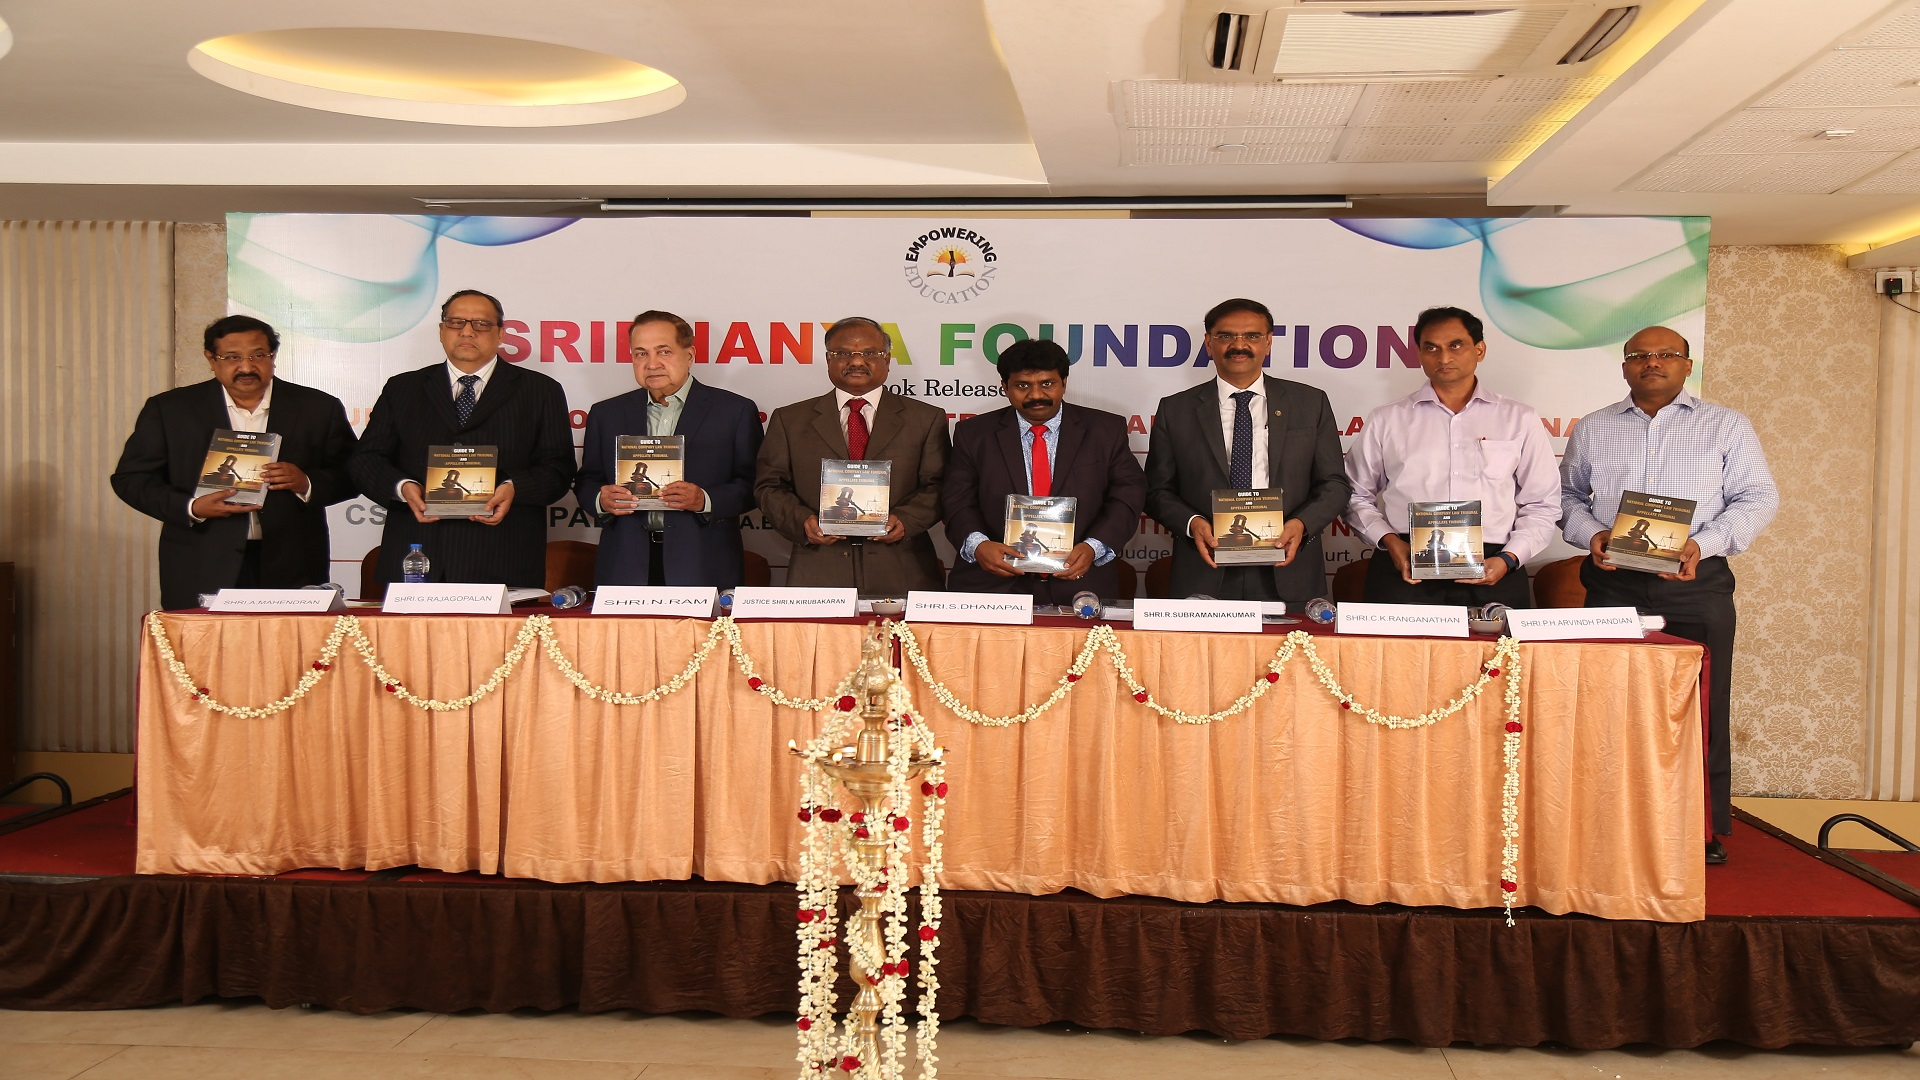 NCLT Book Release